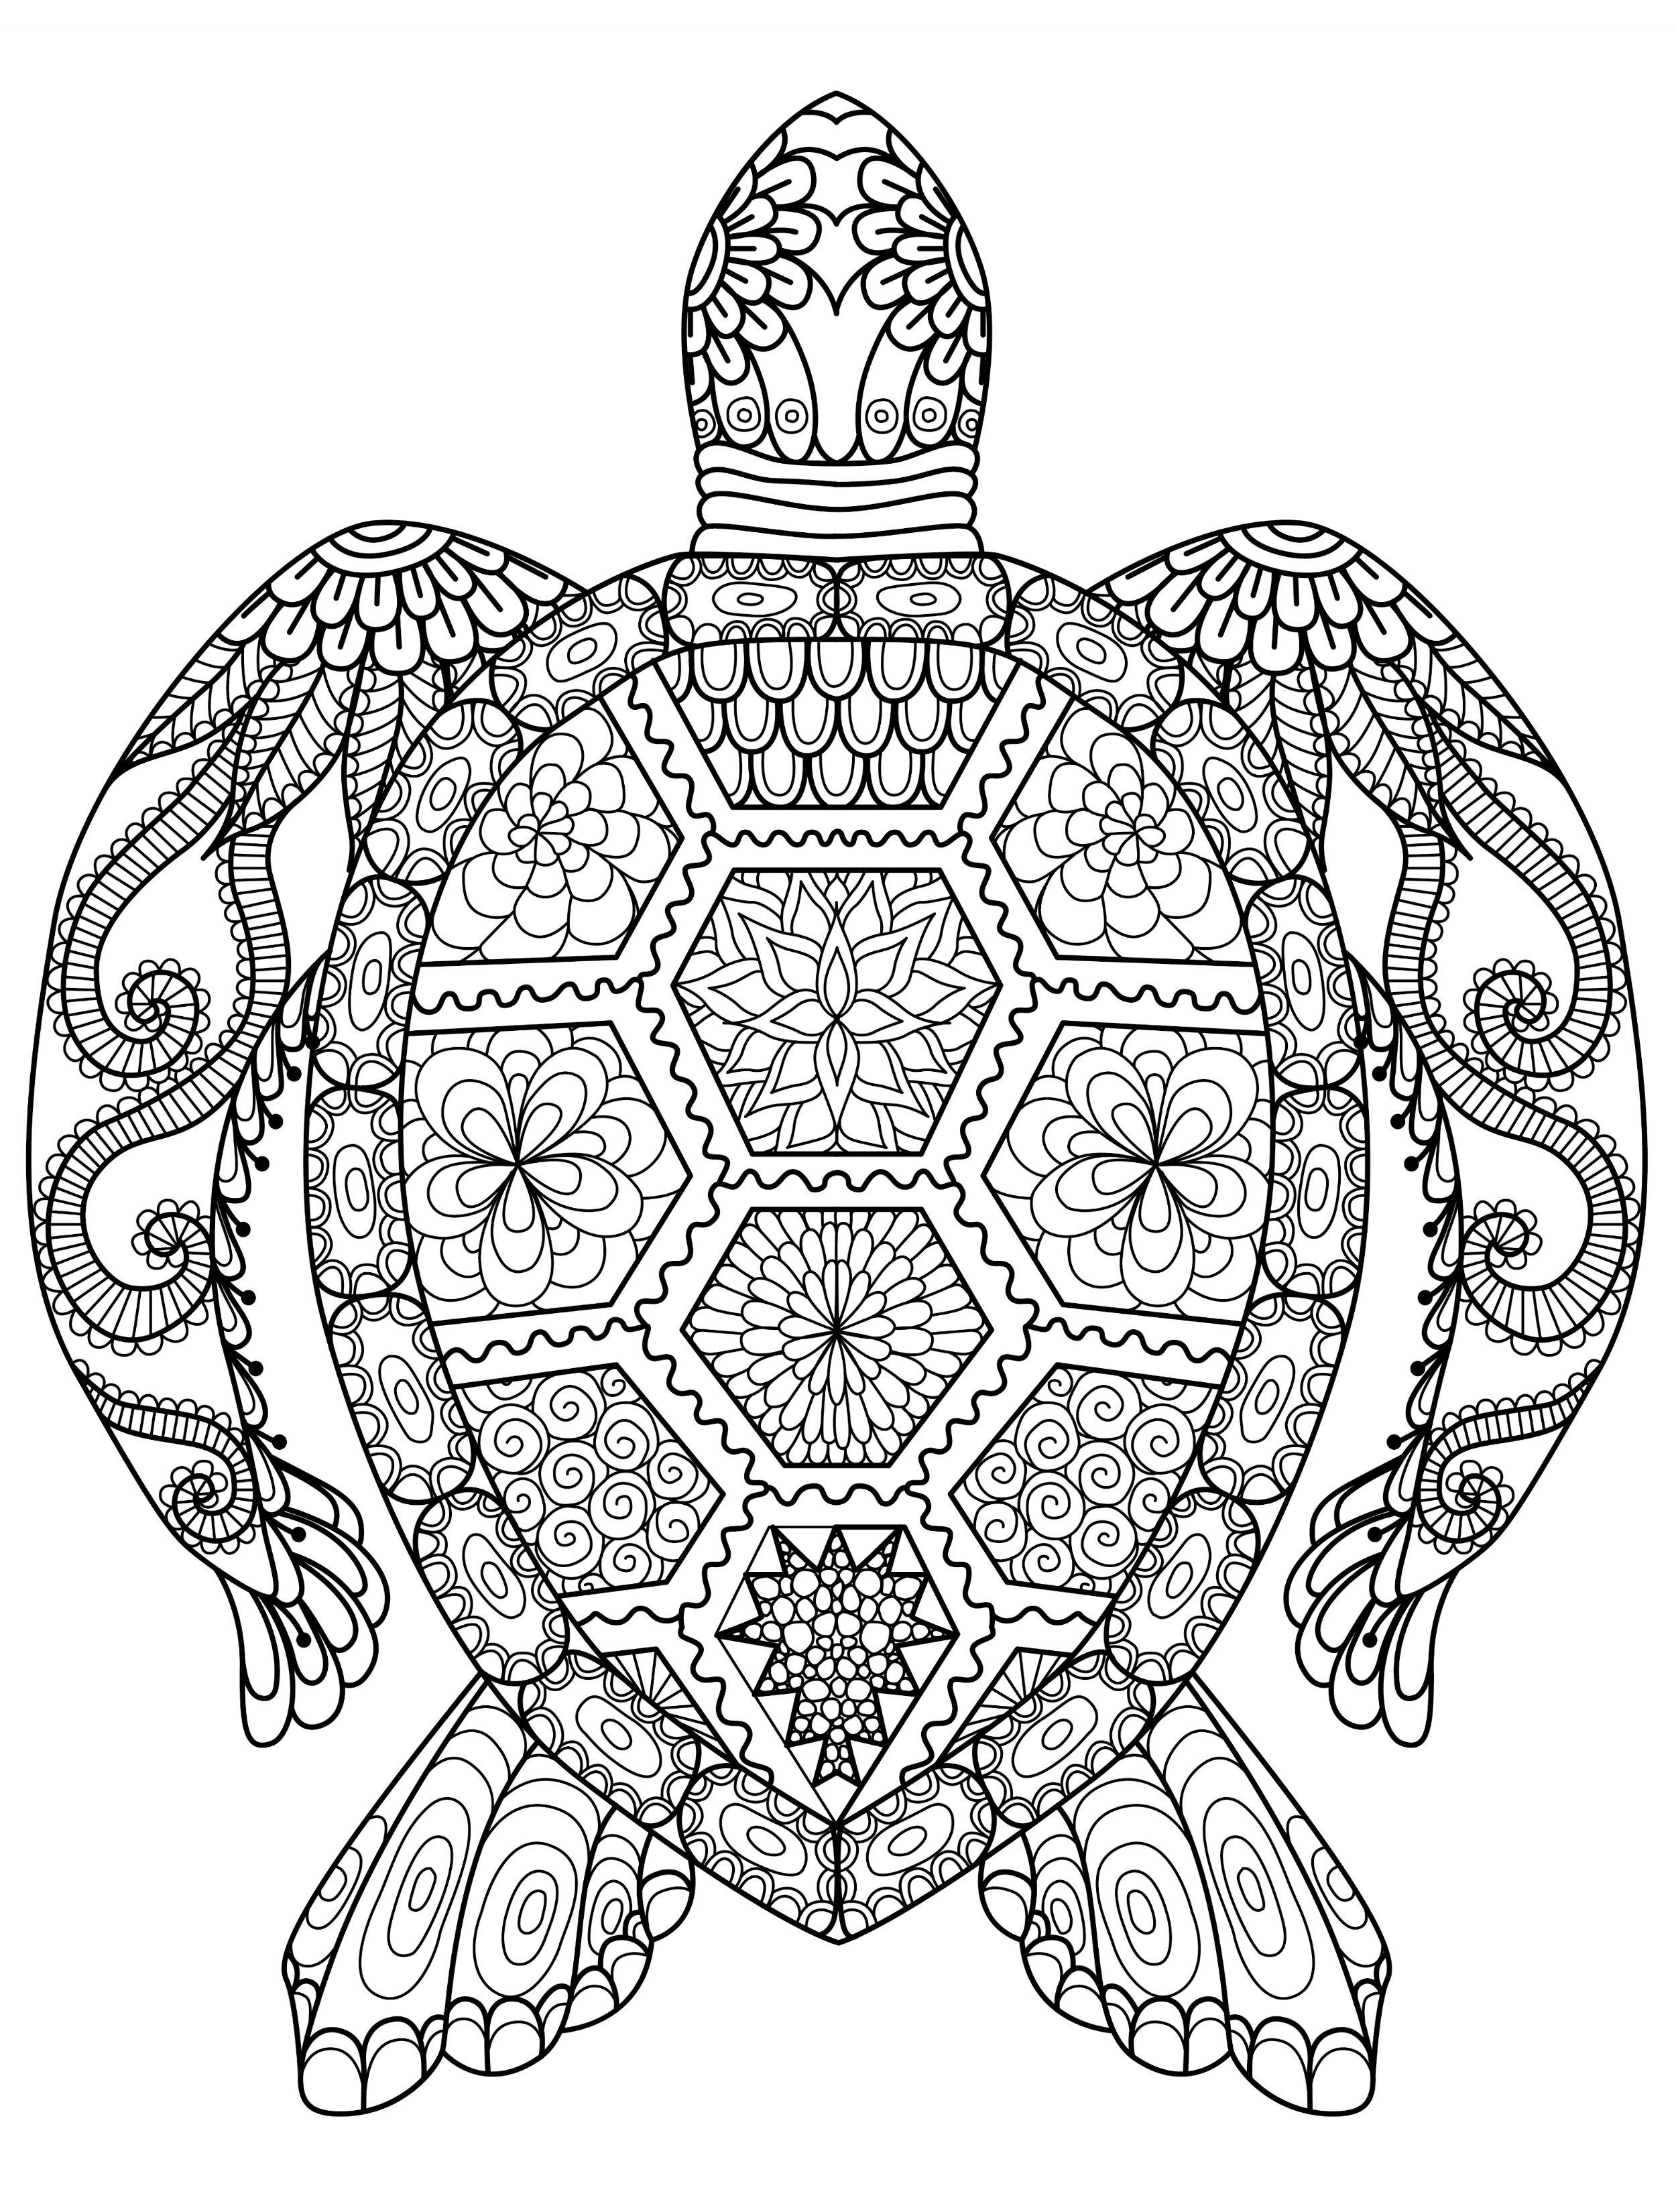 Coloring Pages Coloring Pages For Adult 1000 ideas about free adult coloring pages on pinterest colouring and pages